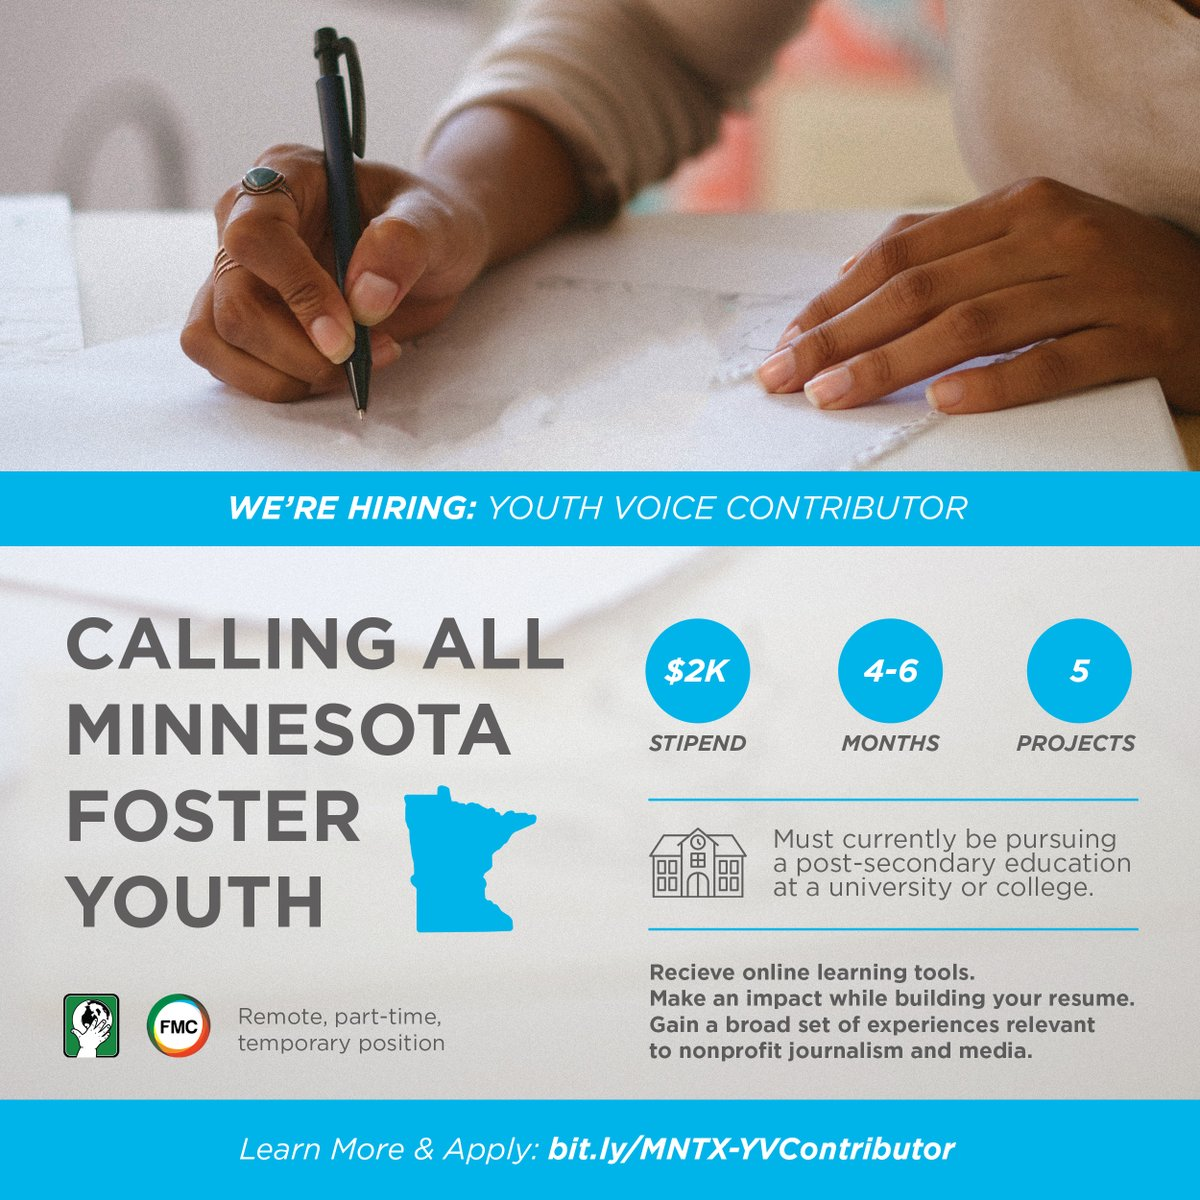 Do you know a #fosteryouth based in Minnesota or Texas interested in pursuing a career in #journalism? Pass this #jobopportunity on to them! https://t.co/xSQdCpX9fS https://t.co/I6ARxtwAYi